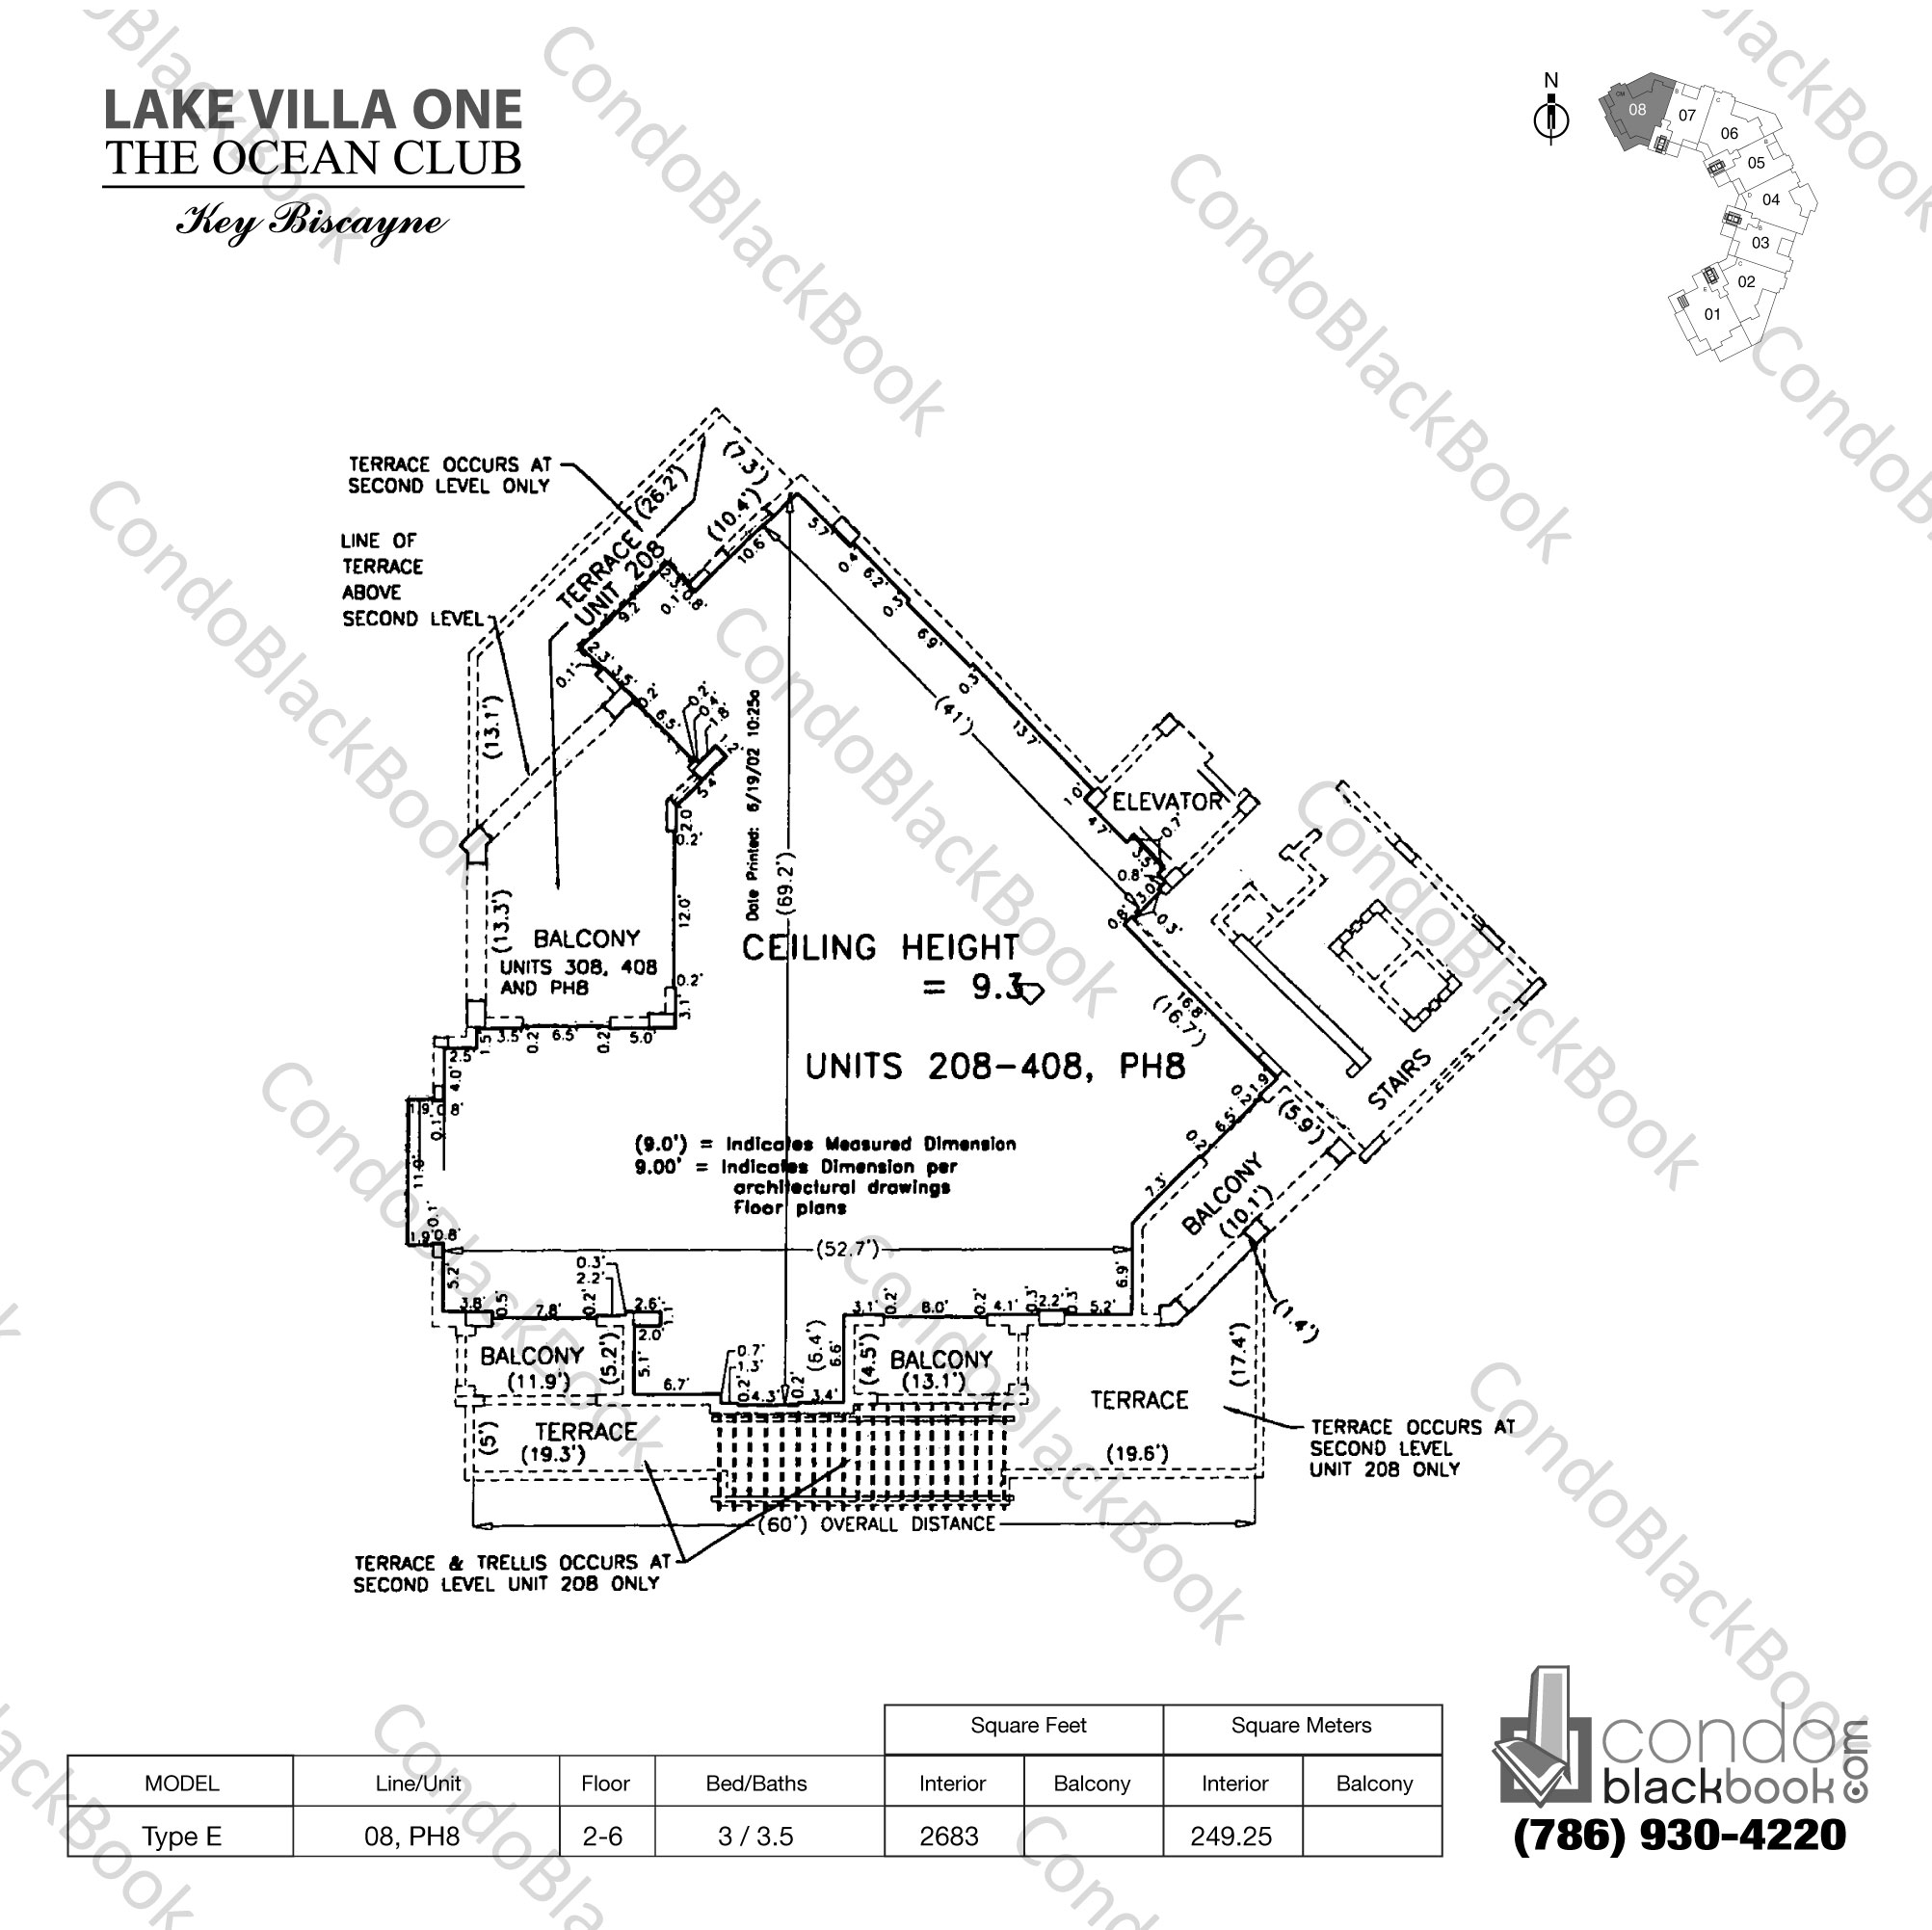 2005x2003 Lake Villa One Unit